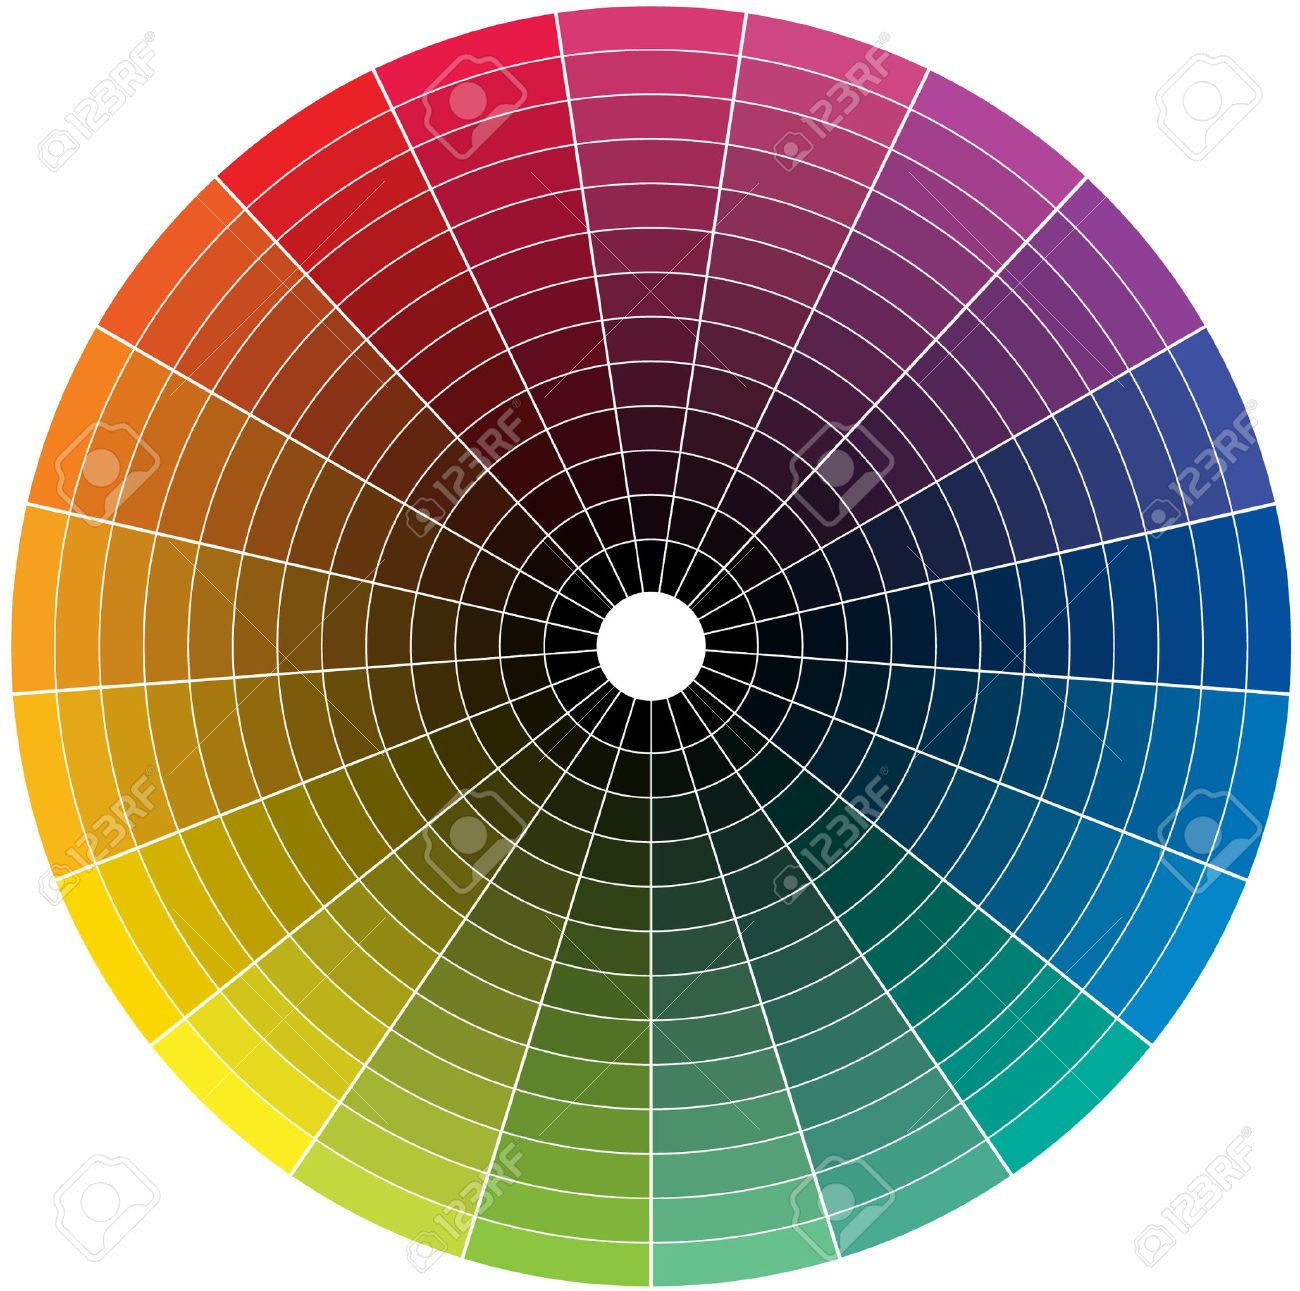 Color Wheel With The Transition To Black In The Middle Royalty Free